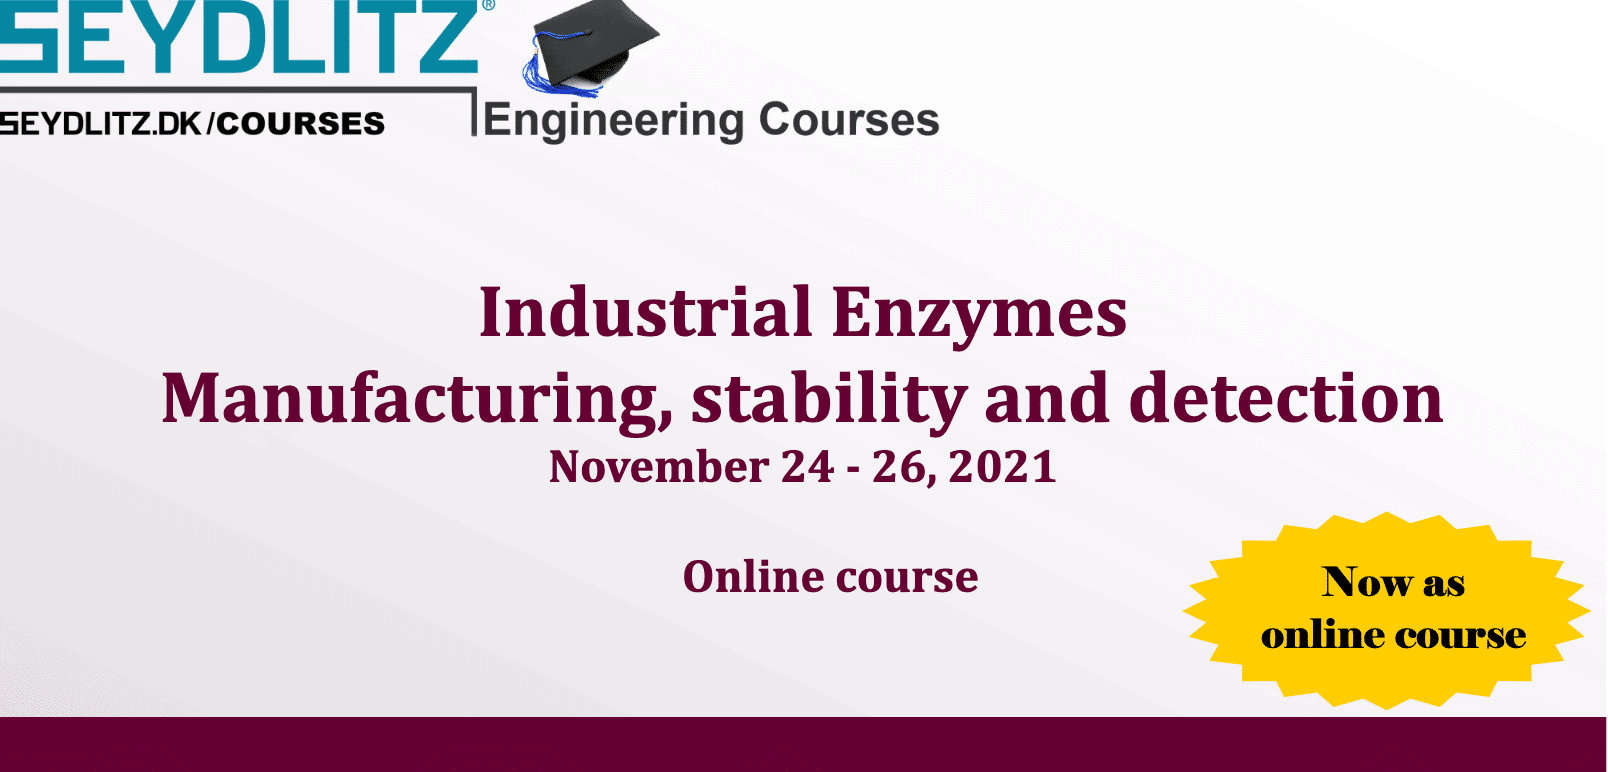 Industrial Enzymes Manufacturing, stability and detection